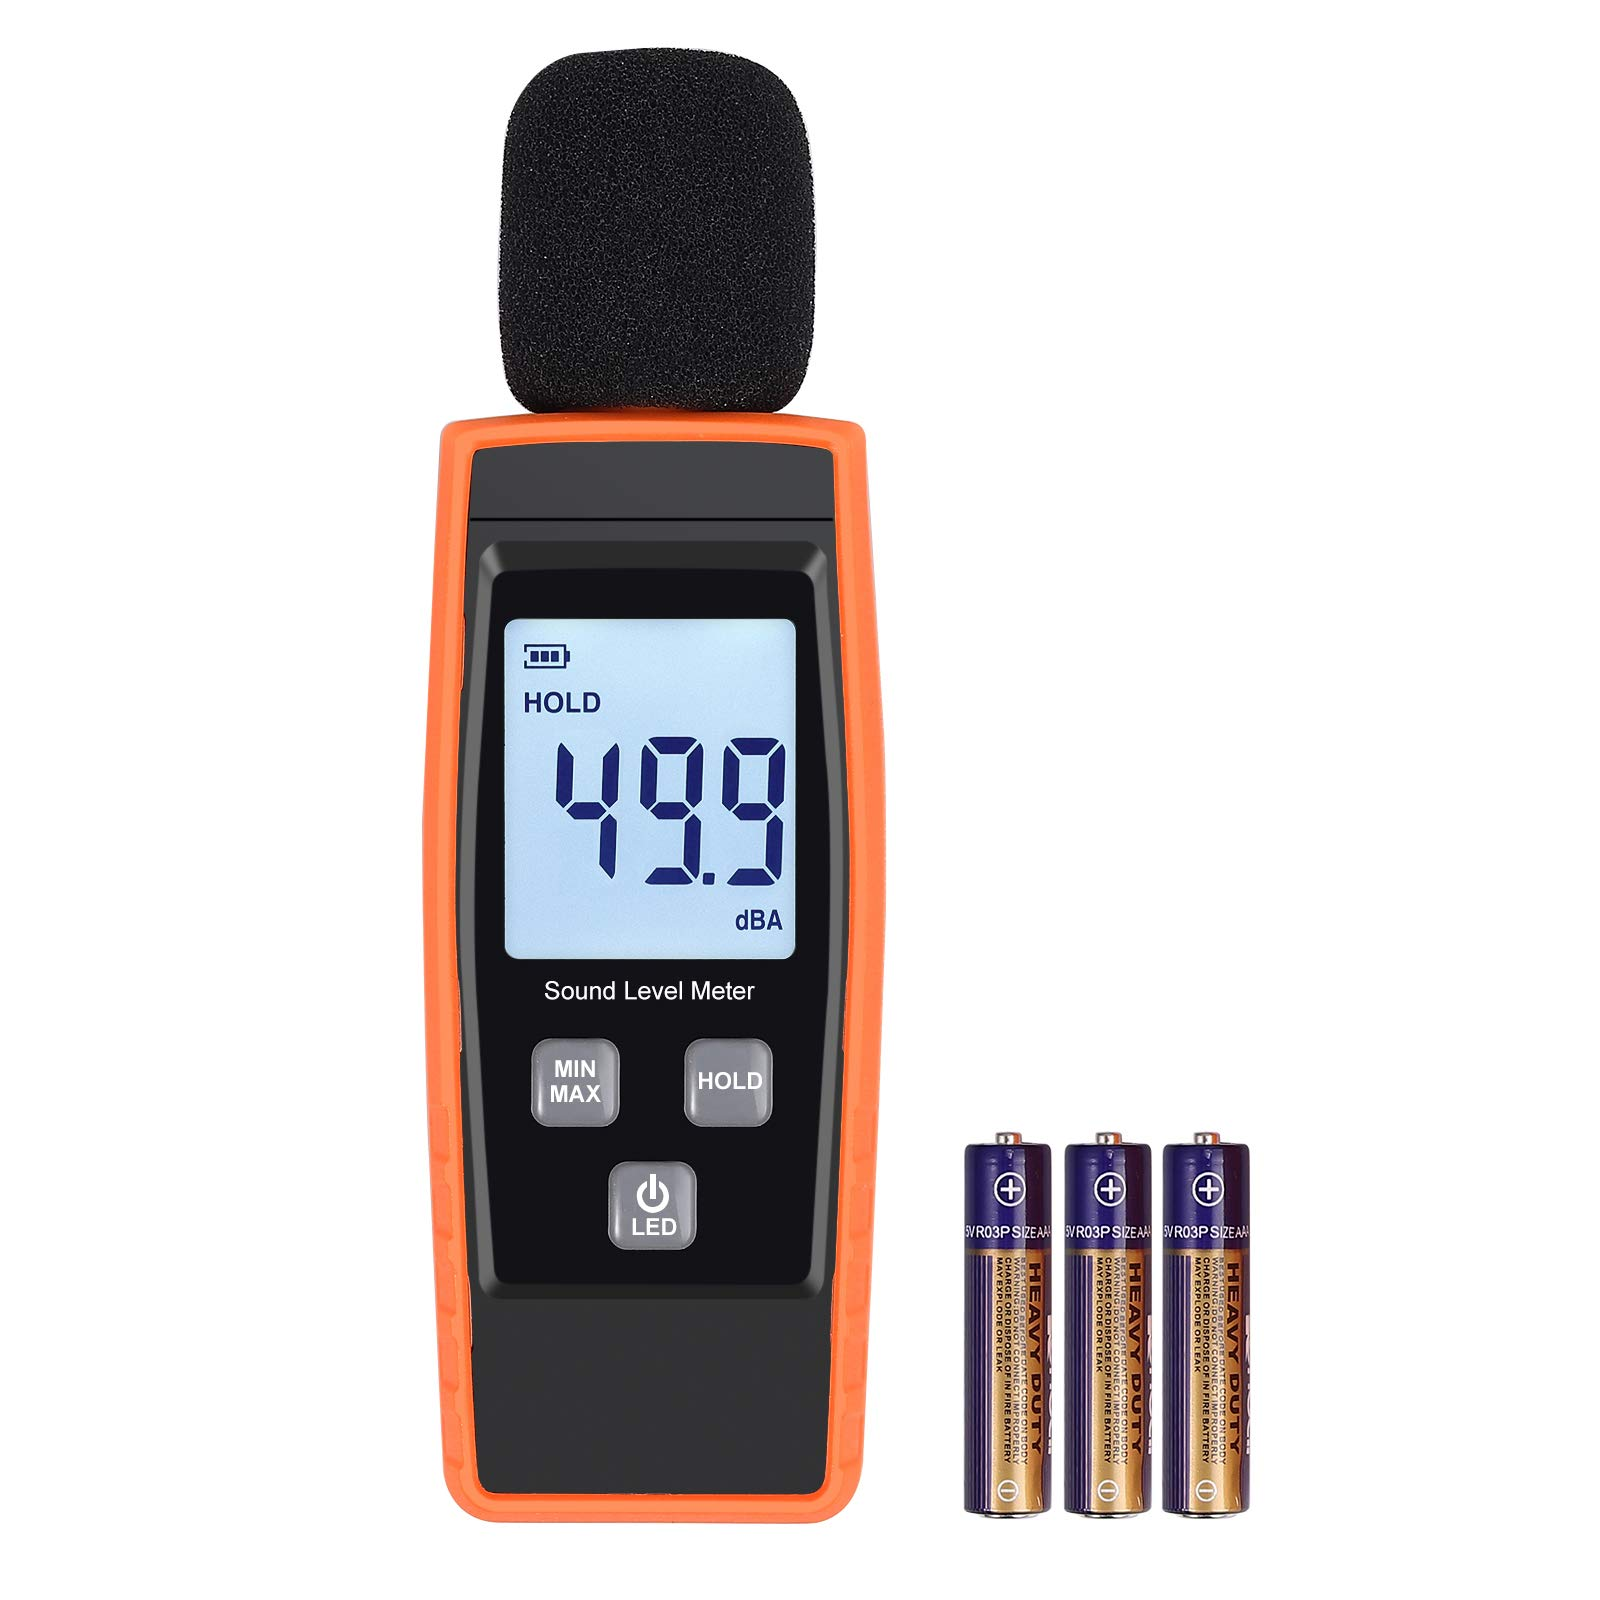 LiNKFOR Decibel Meter Digital Sound Level Tester Noise Meter Measurement Range 30dBA -130dBA Max/Min Hold Function, LCD Display, Batteries Included Decibel Monitoring Tester by LiNKFOR